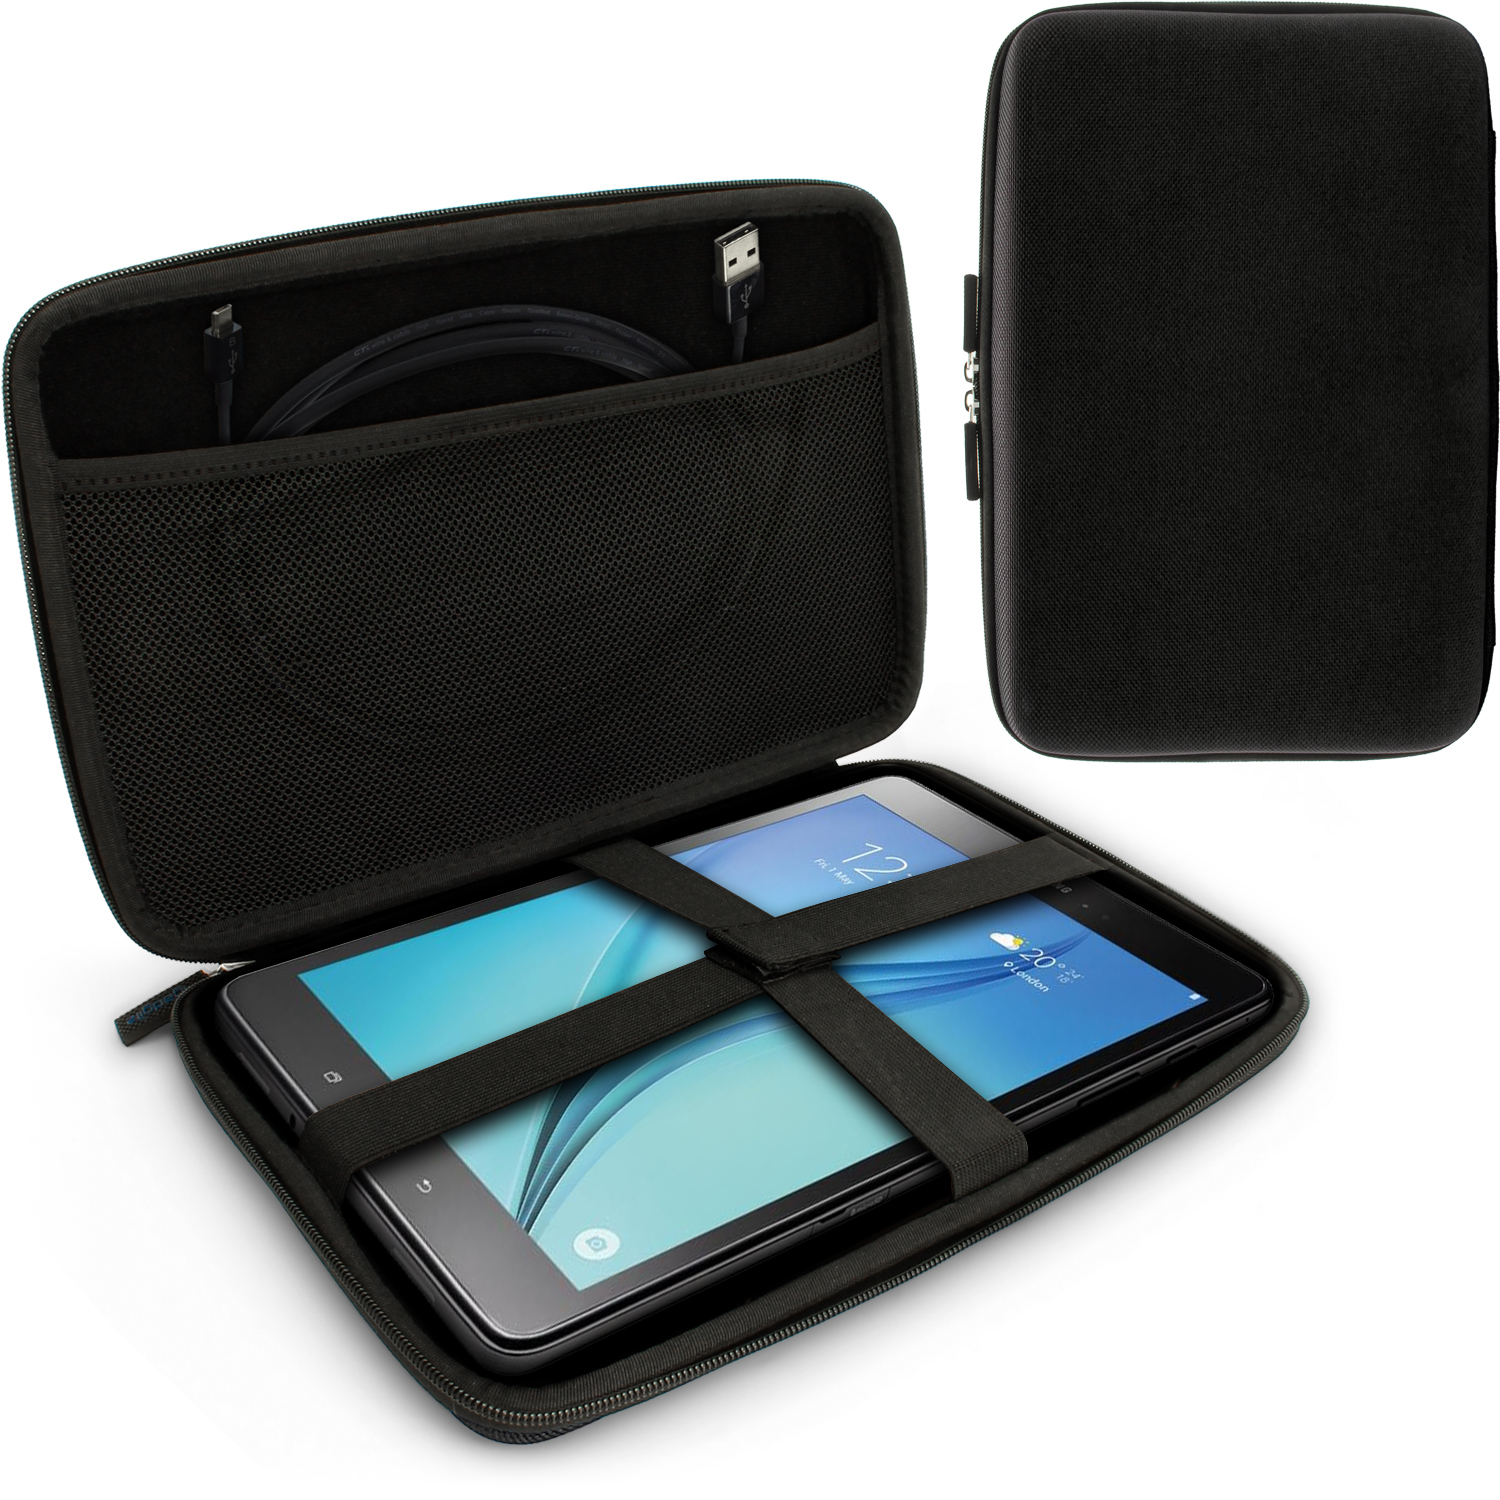 "iGadgitz Black EVA Hard Carry Case for Samsung Galaxy Tab A 9.7"" SM-T550 Sleeve Cover Pouch"